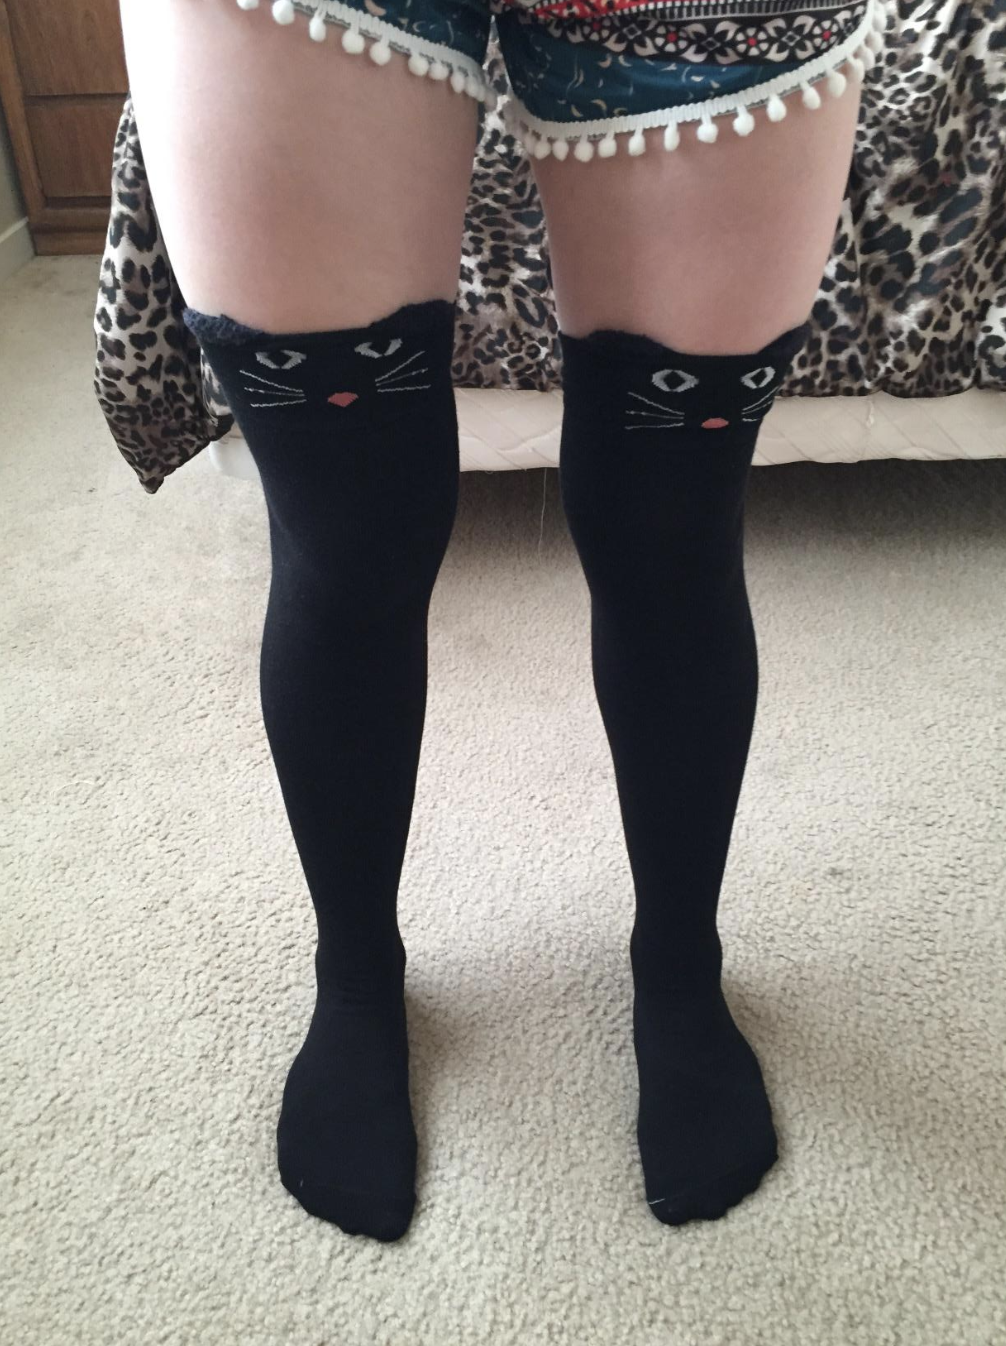 7b821ec13 A pair of knee-high animal socks that increases the risk of your leg being  mistaken as your precious pet wearing a sandal.